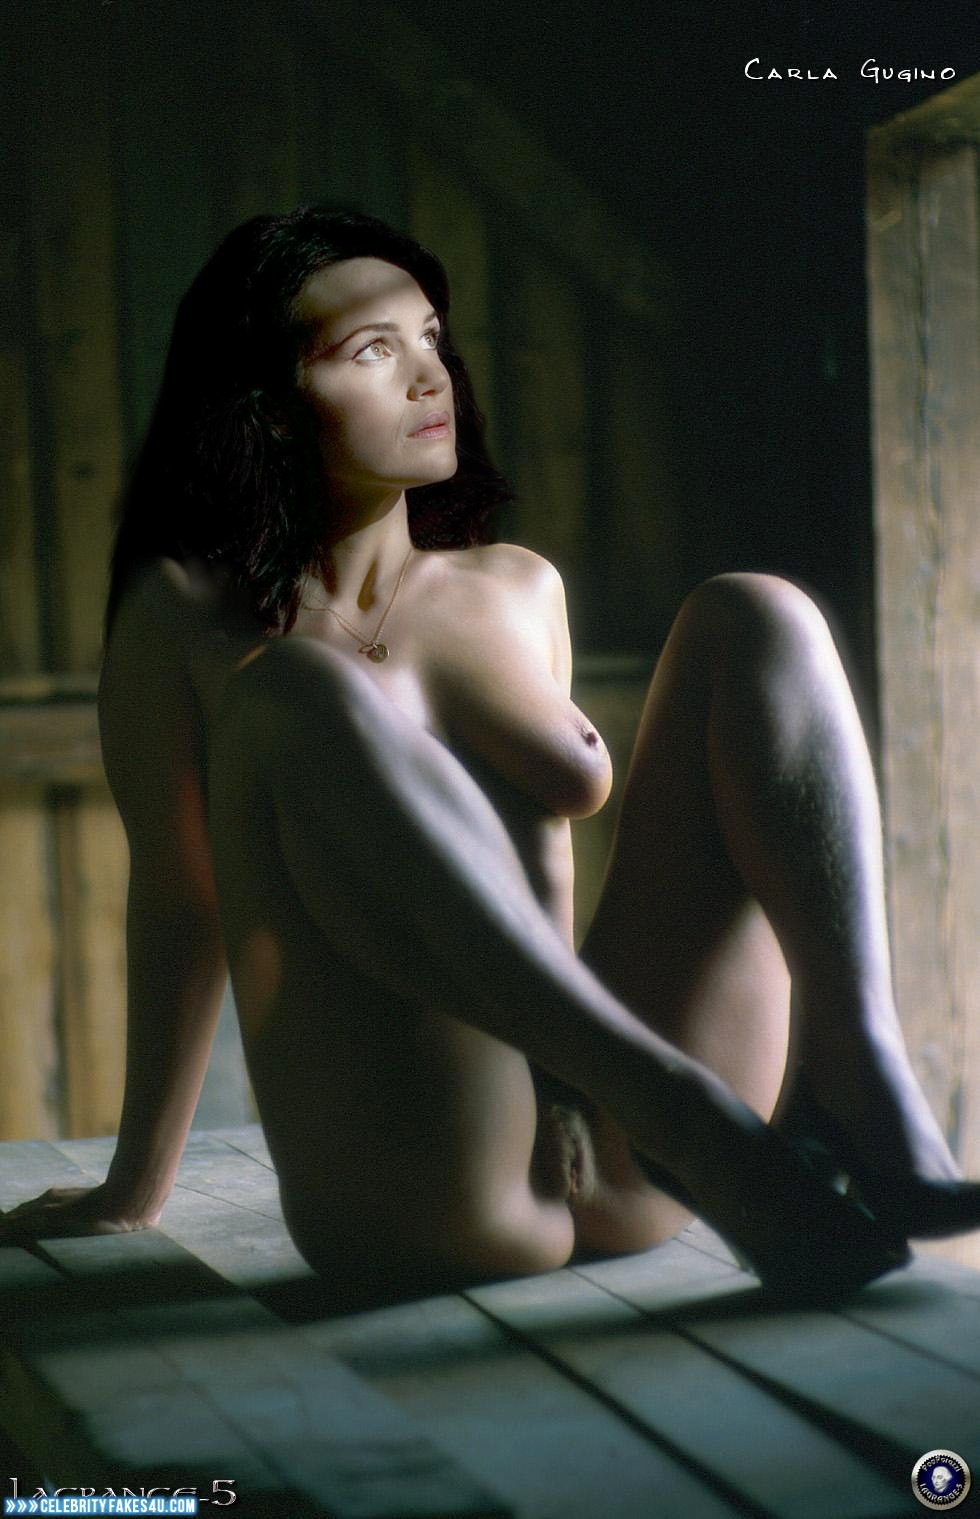 elaine gallo nude